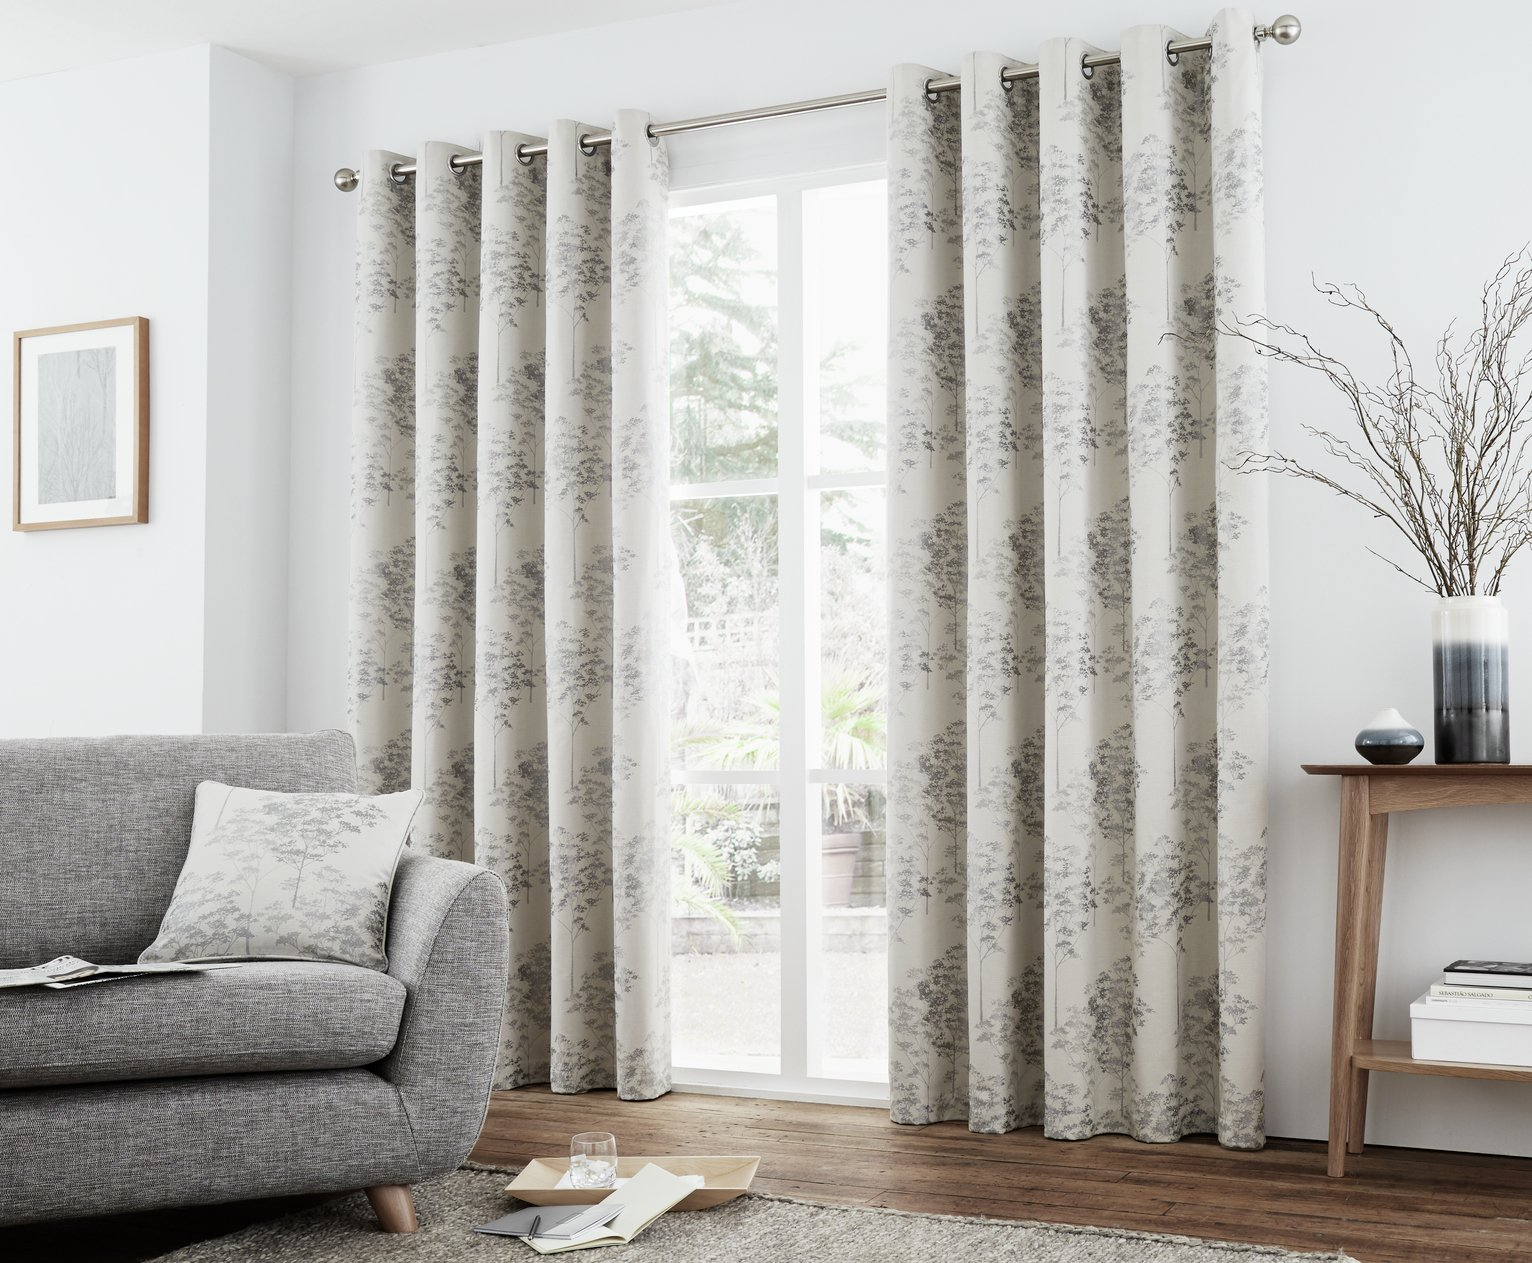 Curtina Elmwood Lined Curtains - 229x183cm - Silver